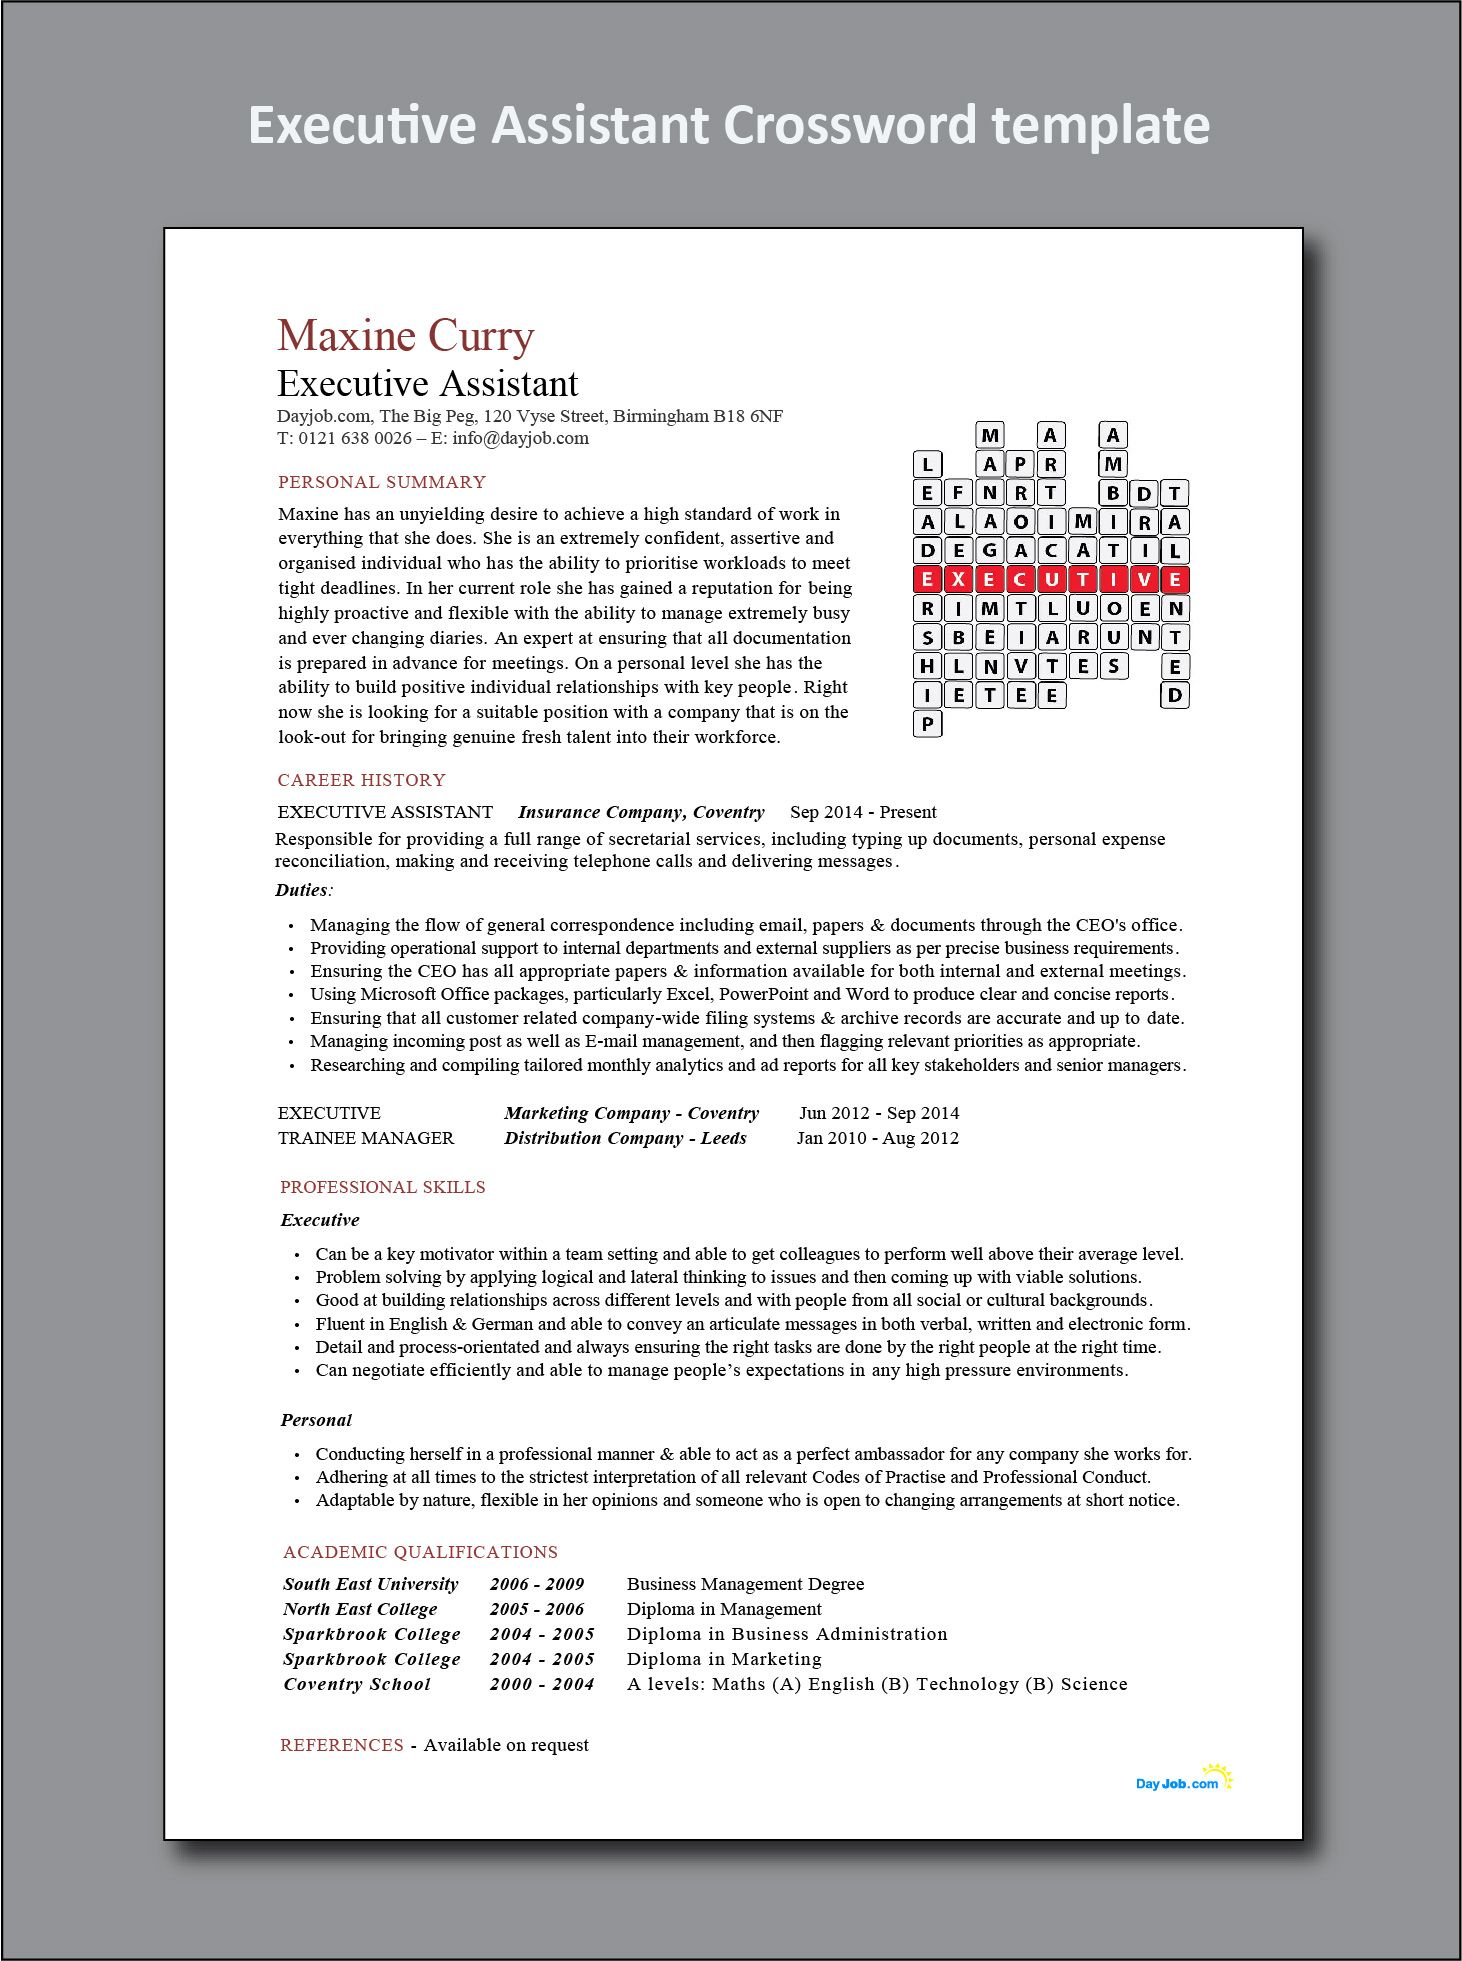 Executive Assistant Crossword template, CV, resume, to CEO